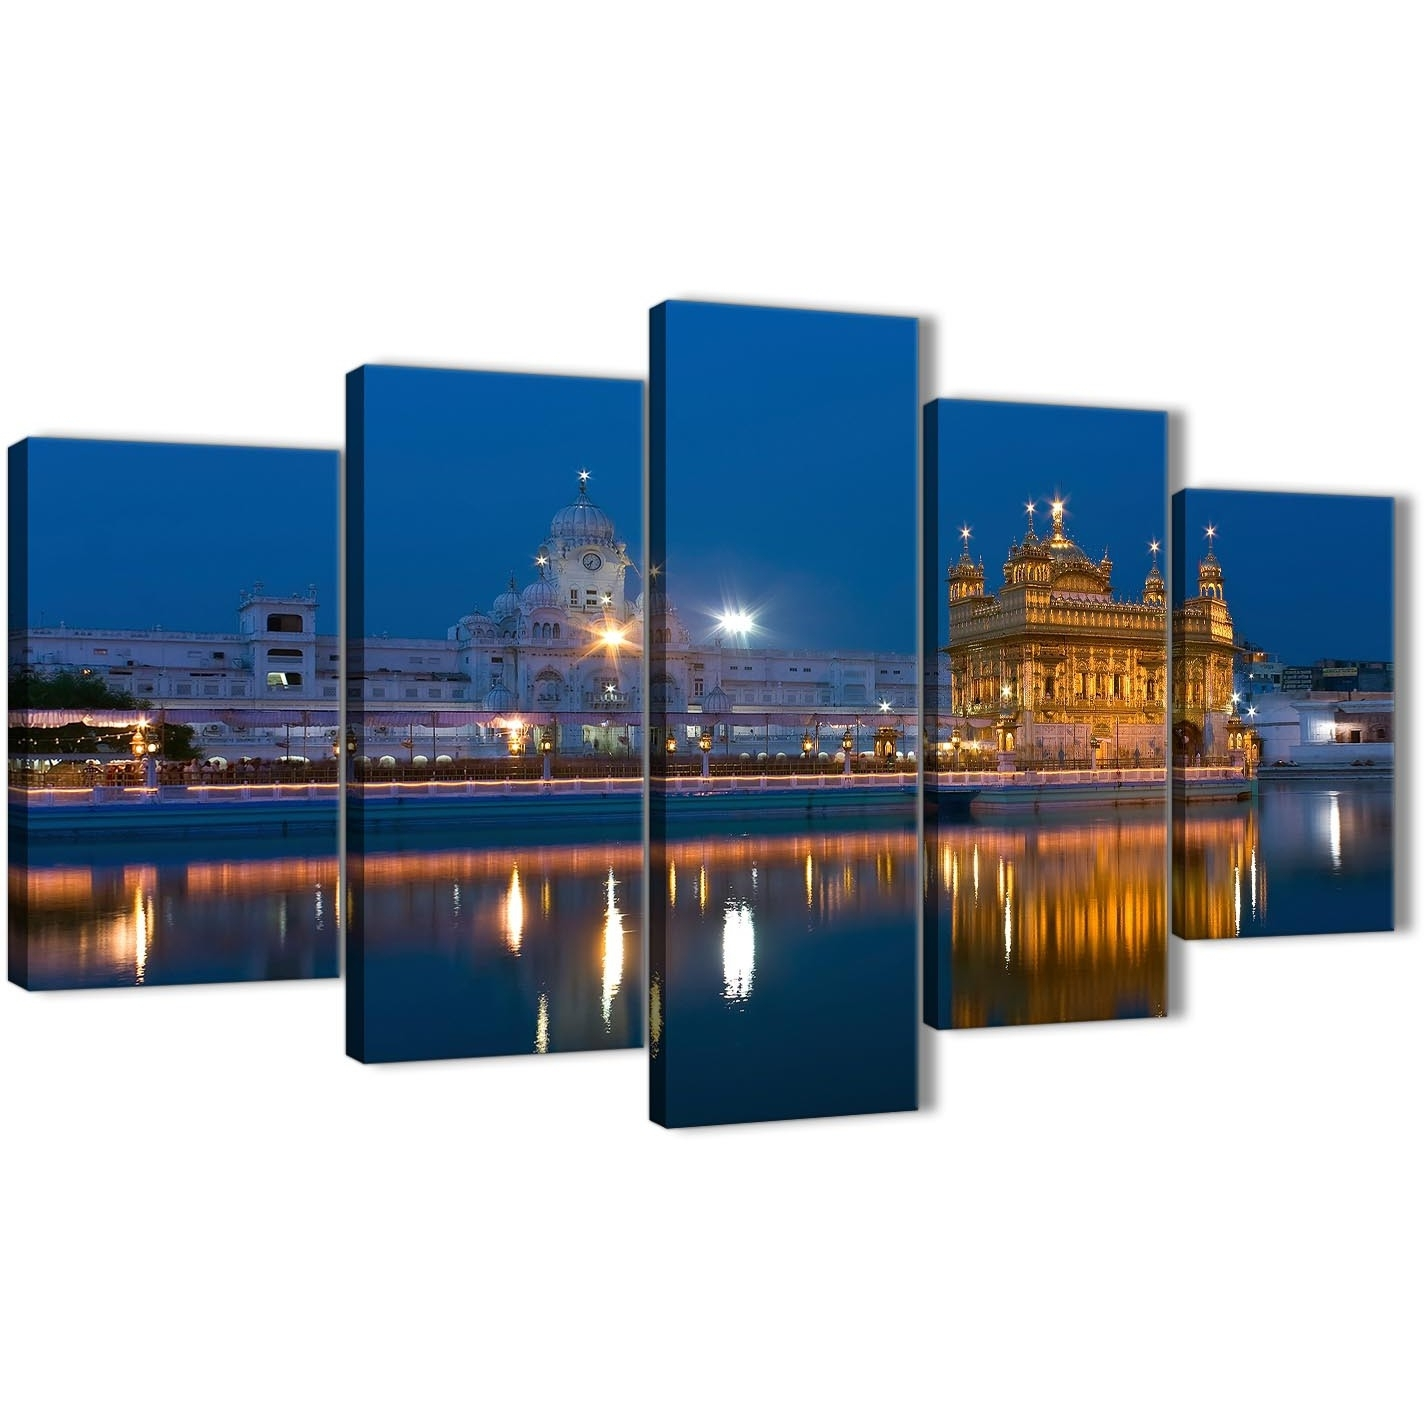 5 Panel Canvas Wall Art Pictures – Sikh Golden Temple Amritsar With Most Popular 5 Piece Canvas Wall Art (View 13 of 20)